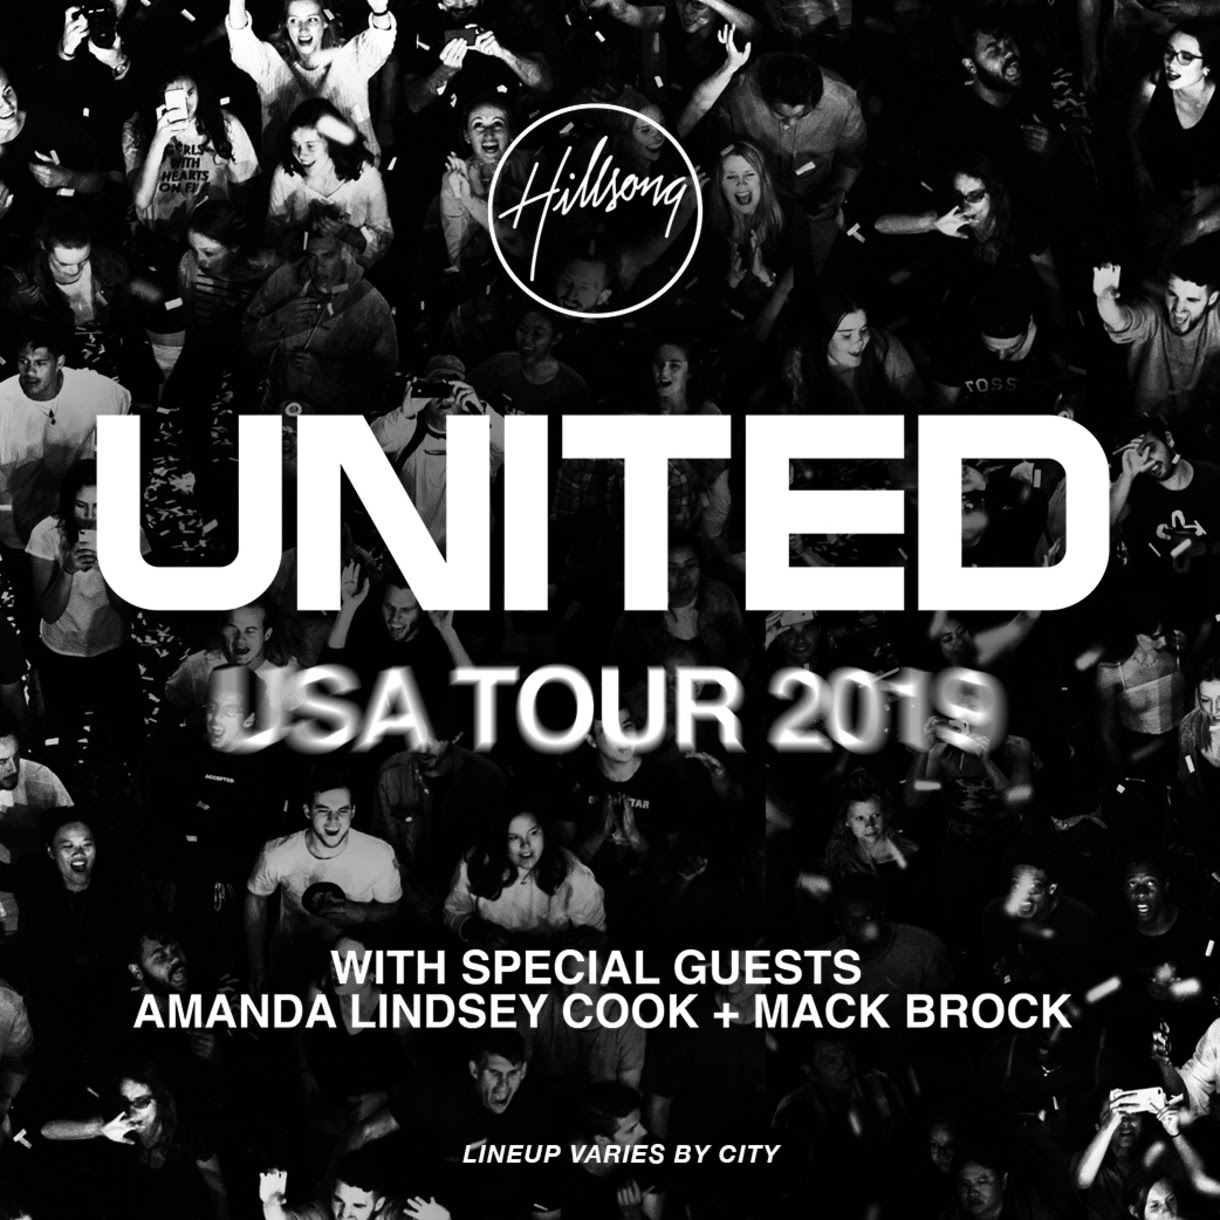 Hillsong UNITED Returns to the USA for Highly Anticipated Tour in 2019